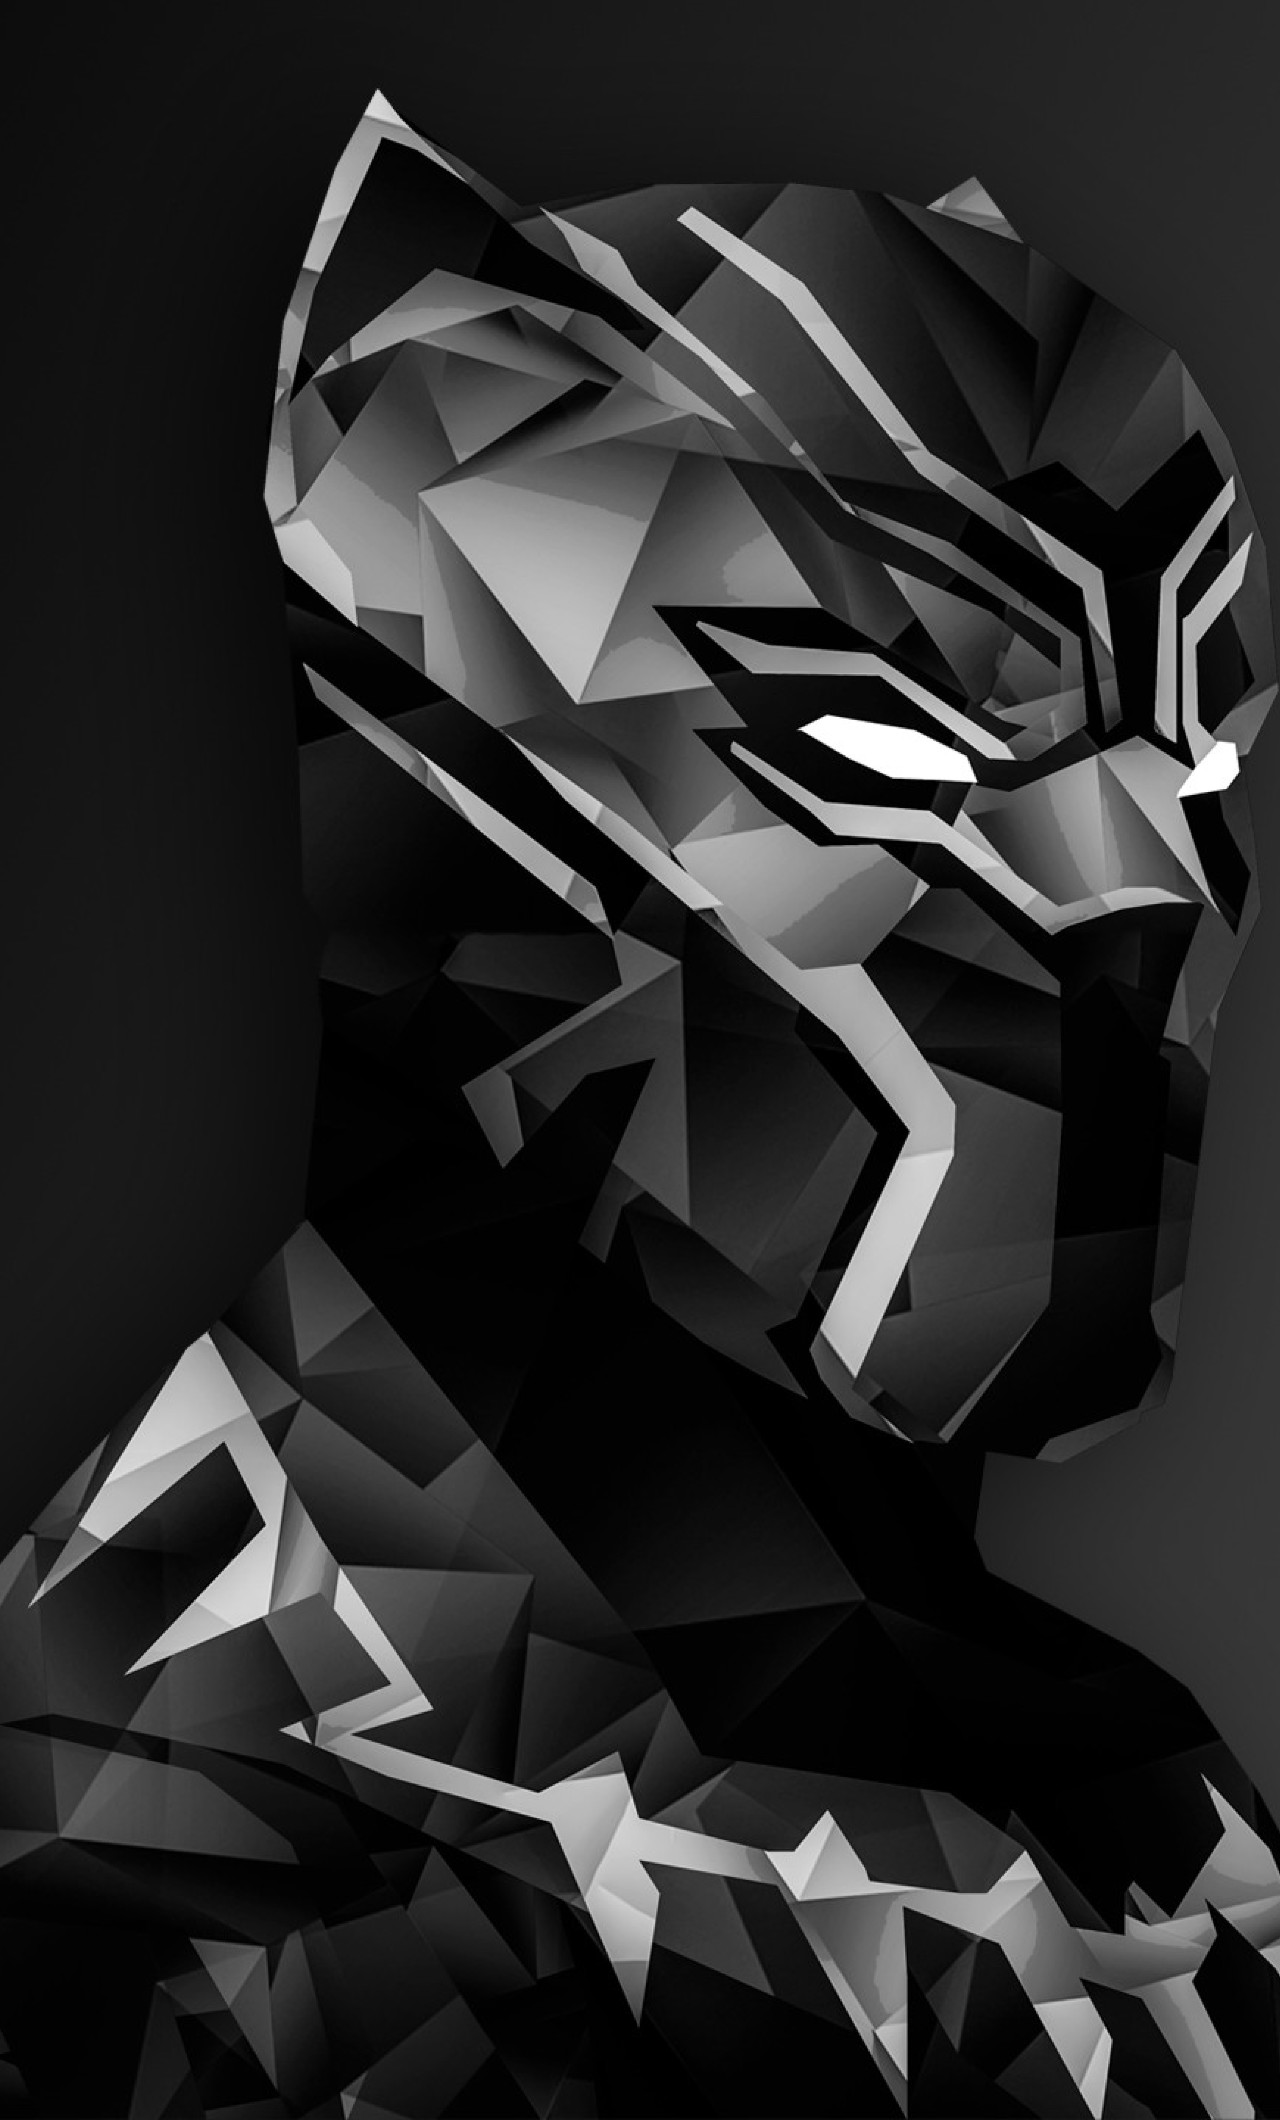 Black Panther Wallpaper Hd Download For Android Mobile Free Photos